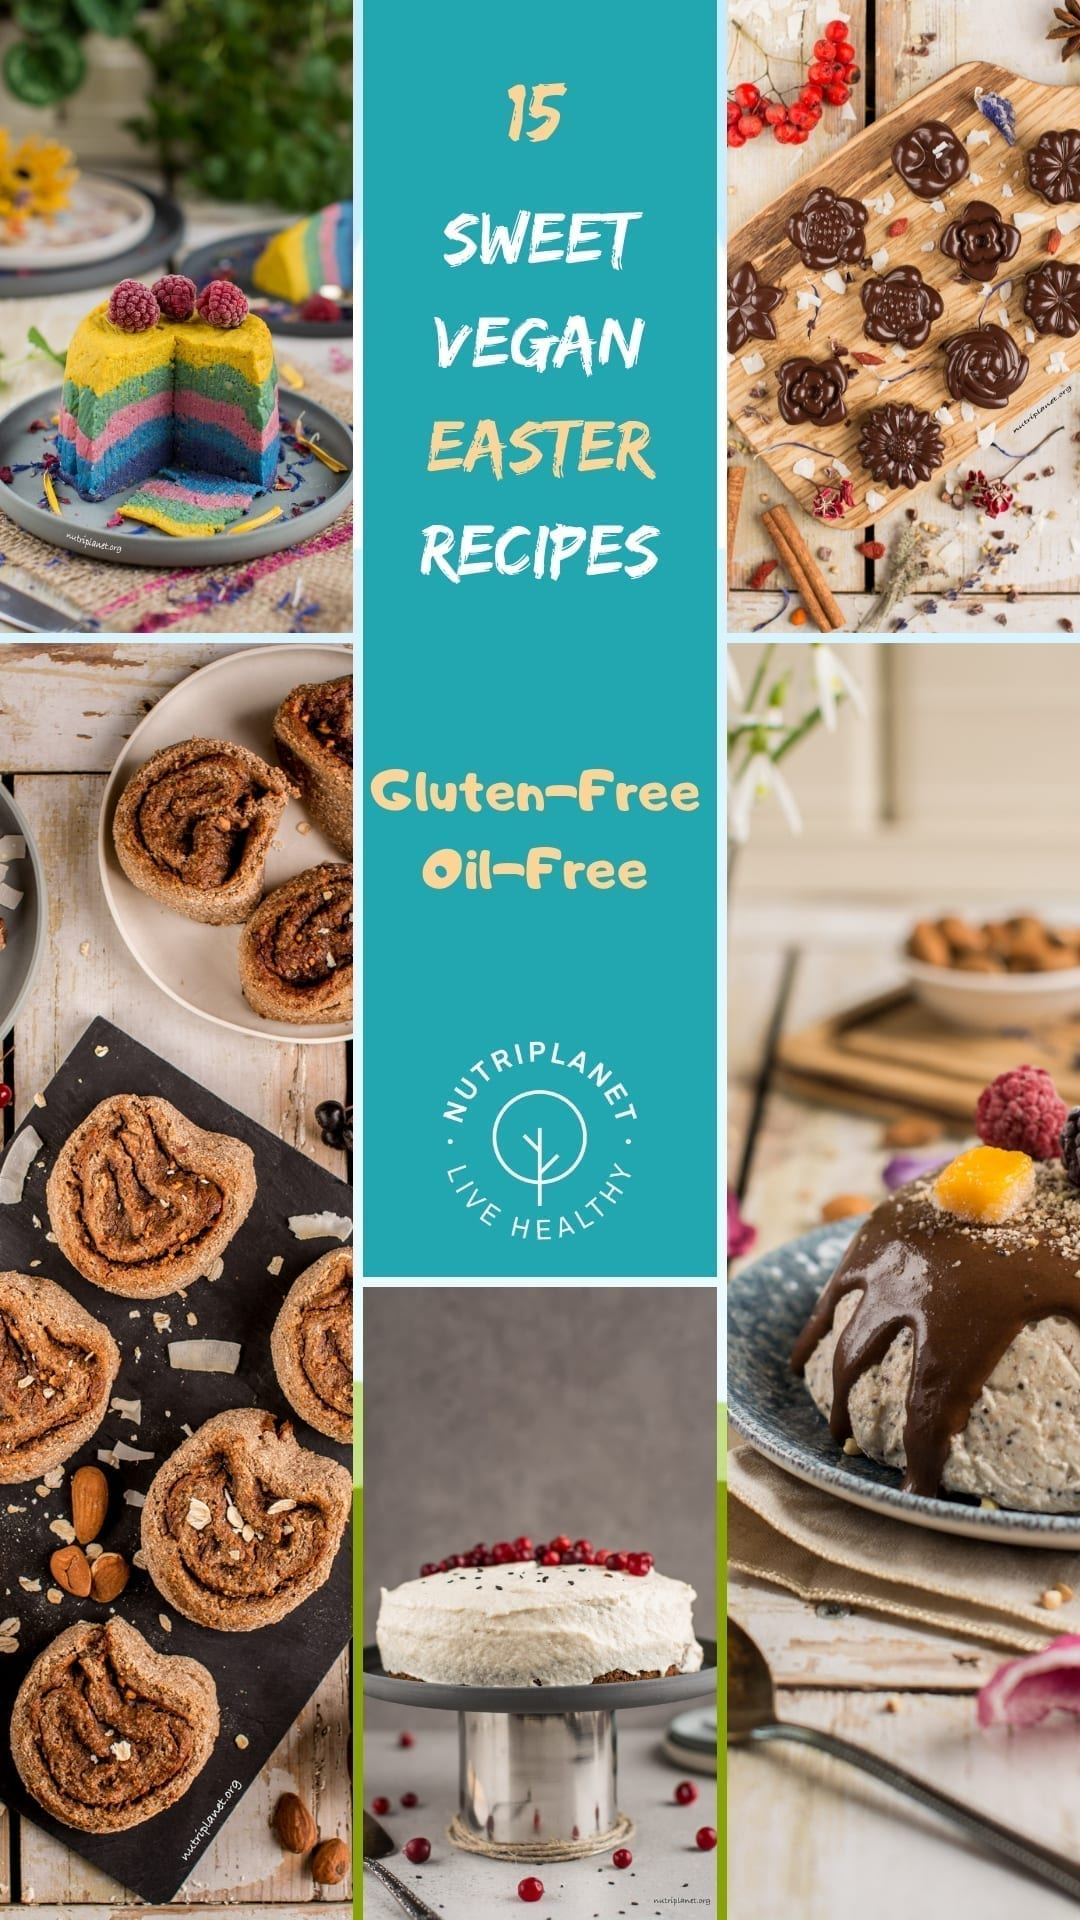 15 Sweet Vegan Easter Recipes